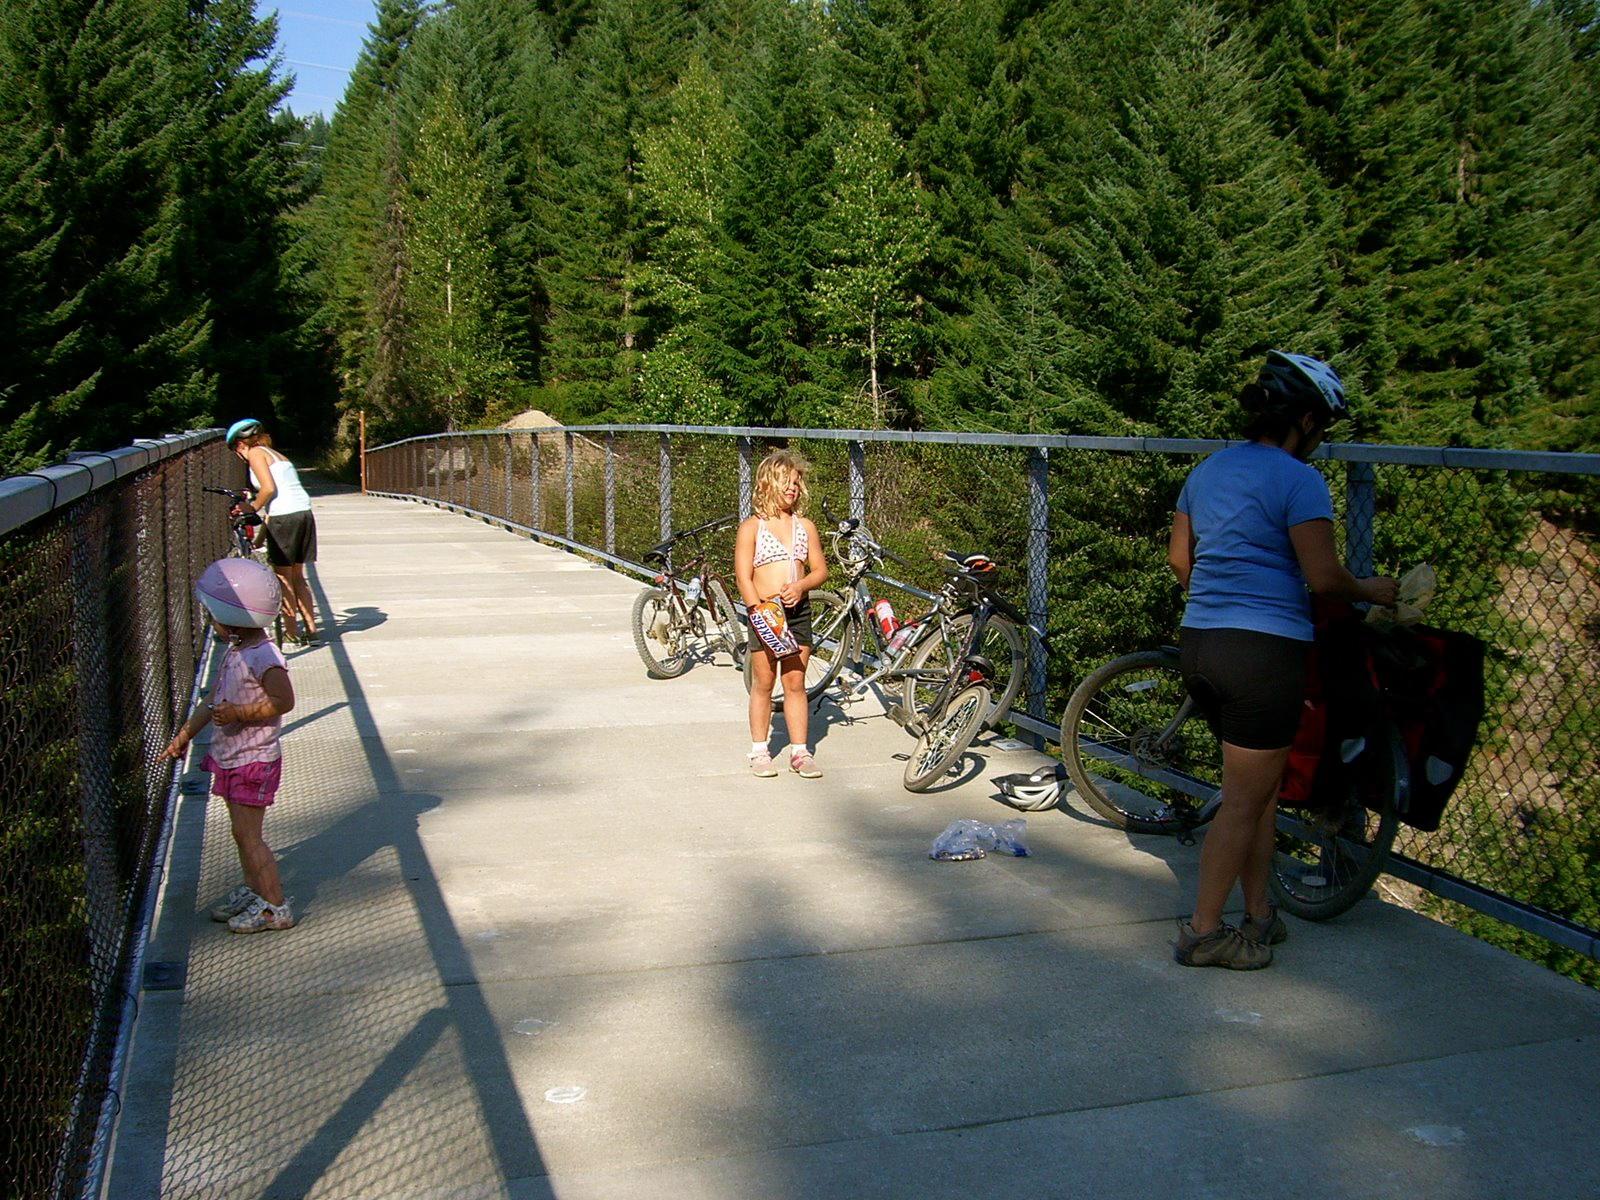 Long day as shadows fall. Family bike ride on the Iron Horsie Trail. Yummy Break over the Yakima River, Cascade Mountains, WA. Saturday 19 August 2006. Clockwise L2R: Talia, Morgan, Kate, & Kristina.